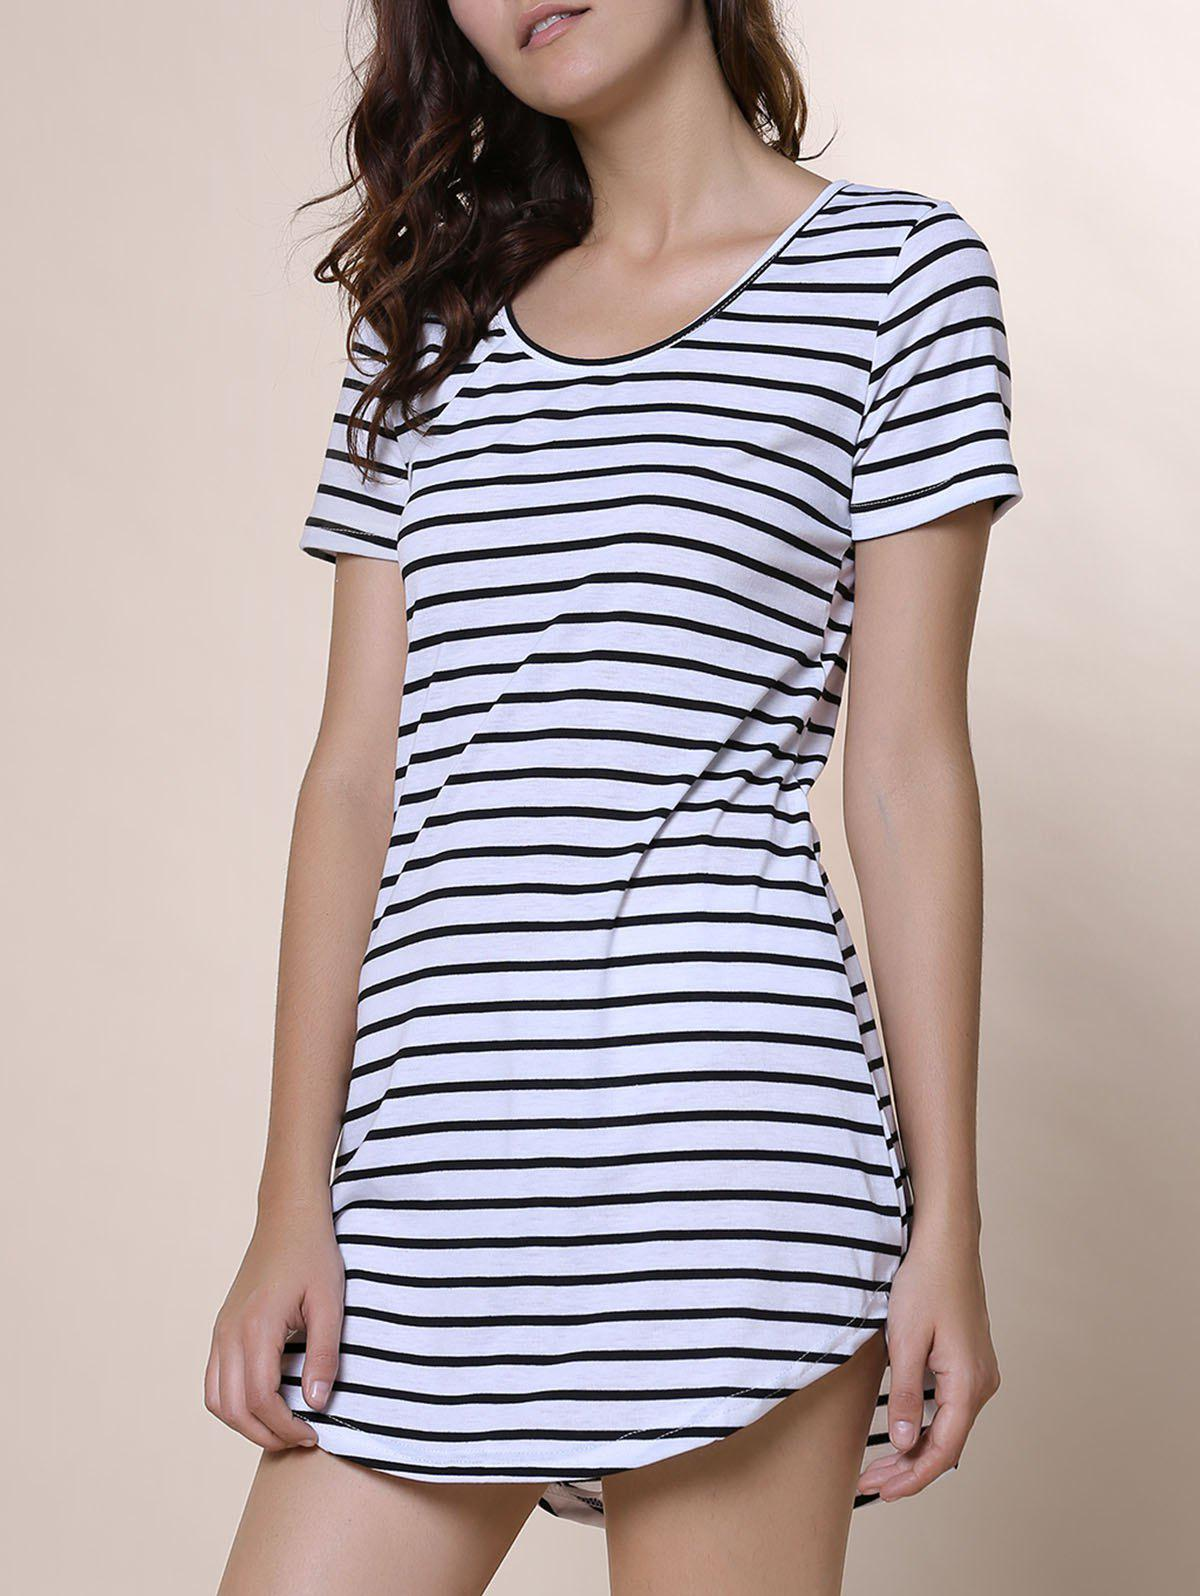 Casual Women's Scoop Neck Striped Short Sleeve Dress - WHITE M